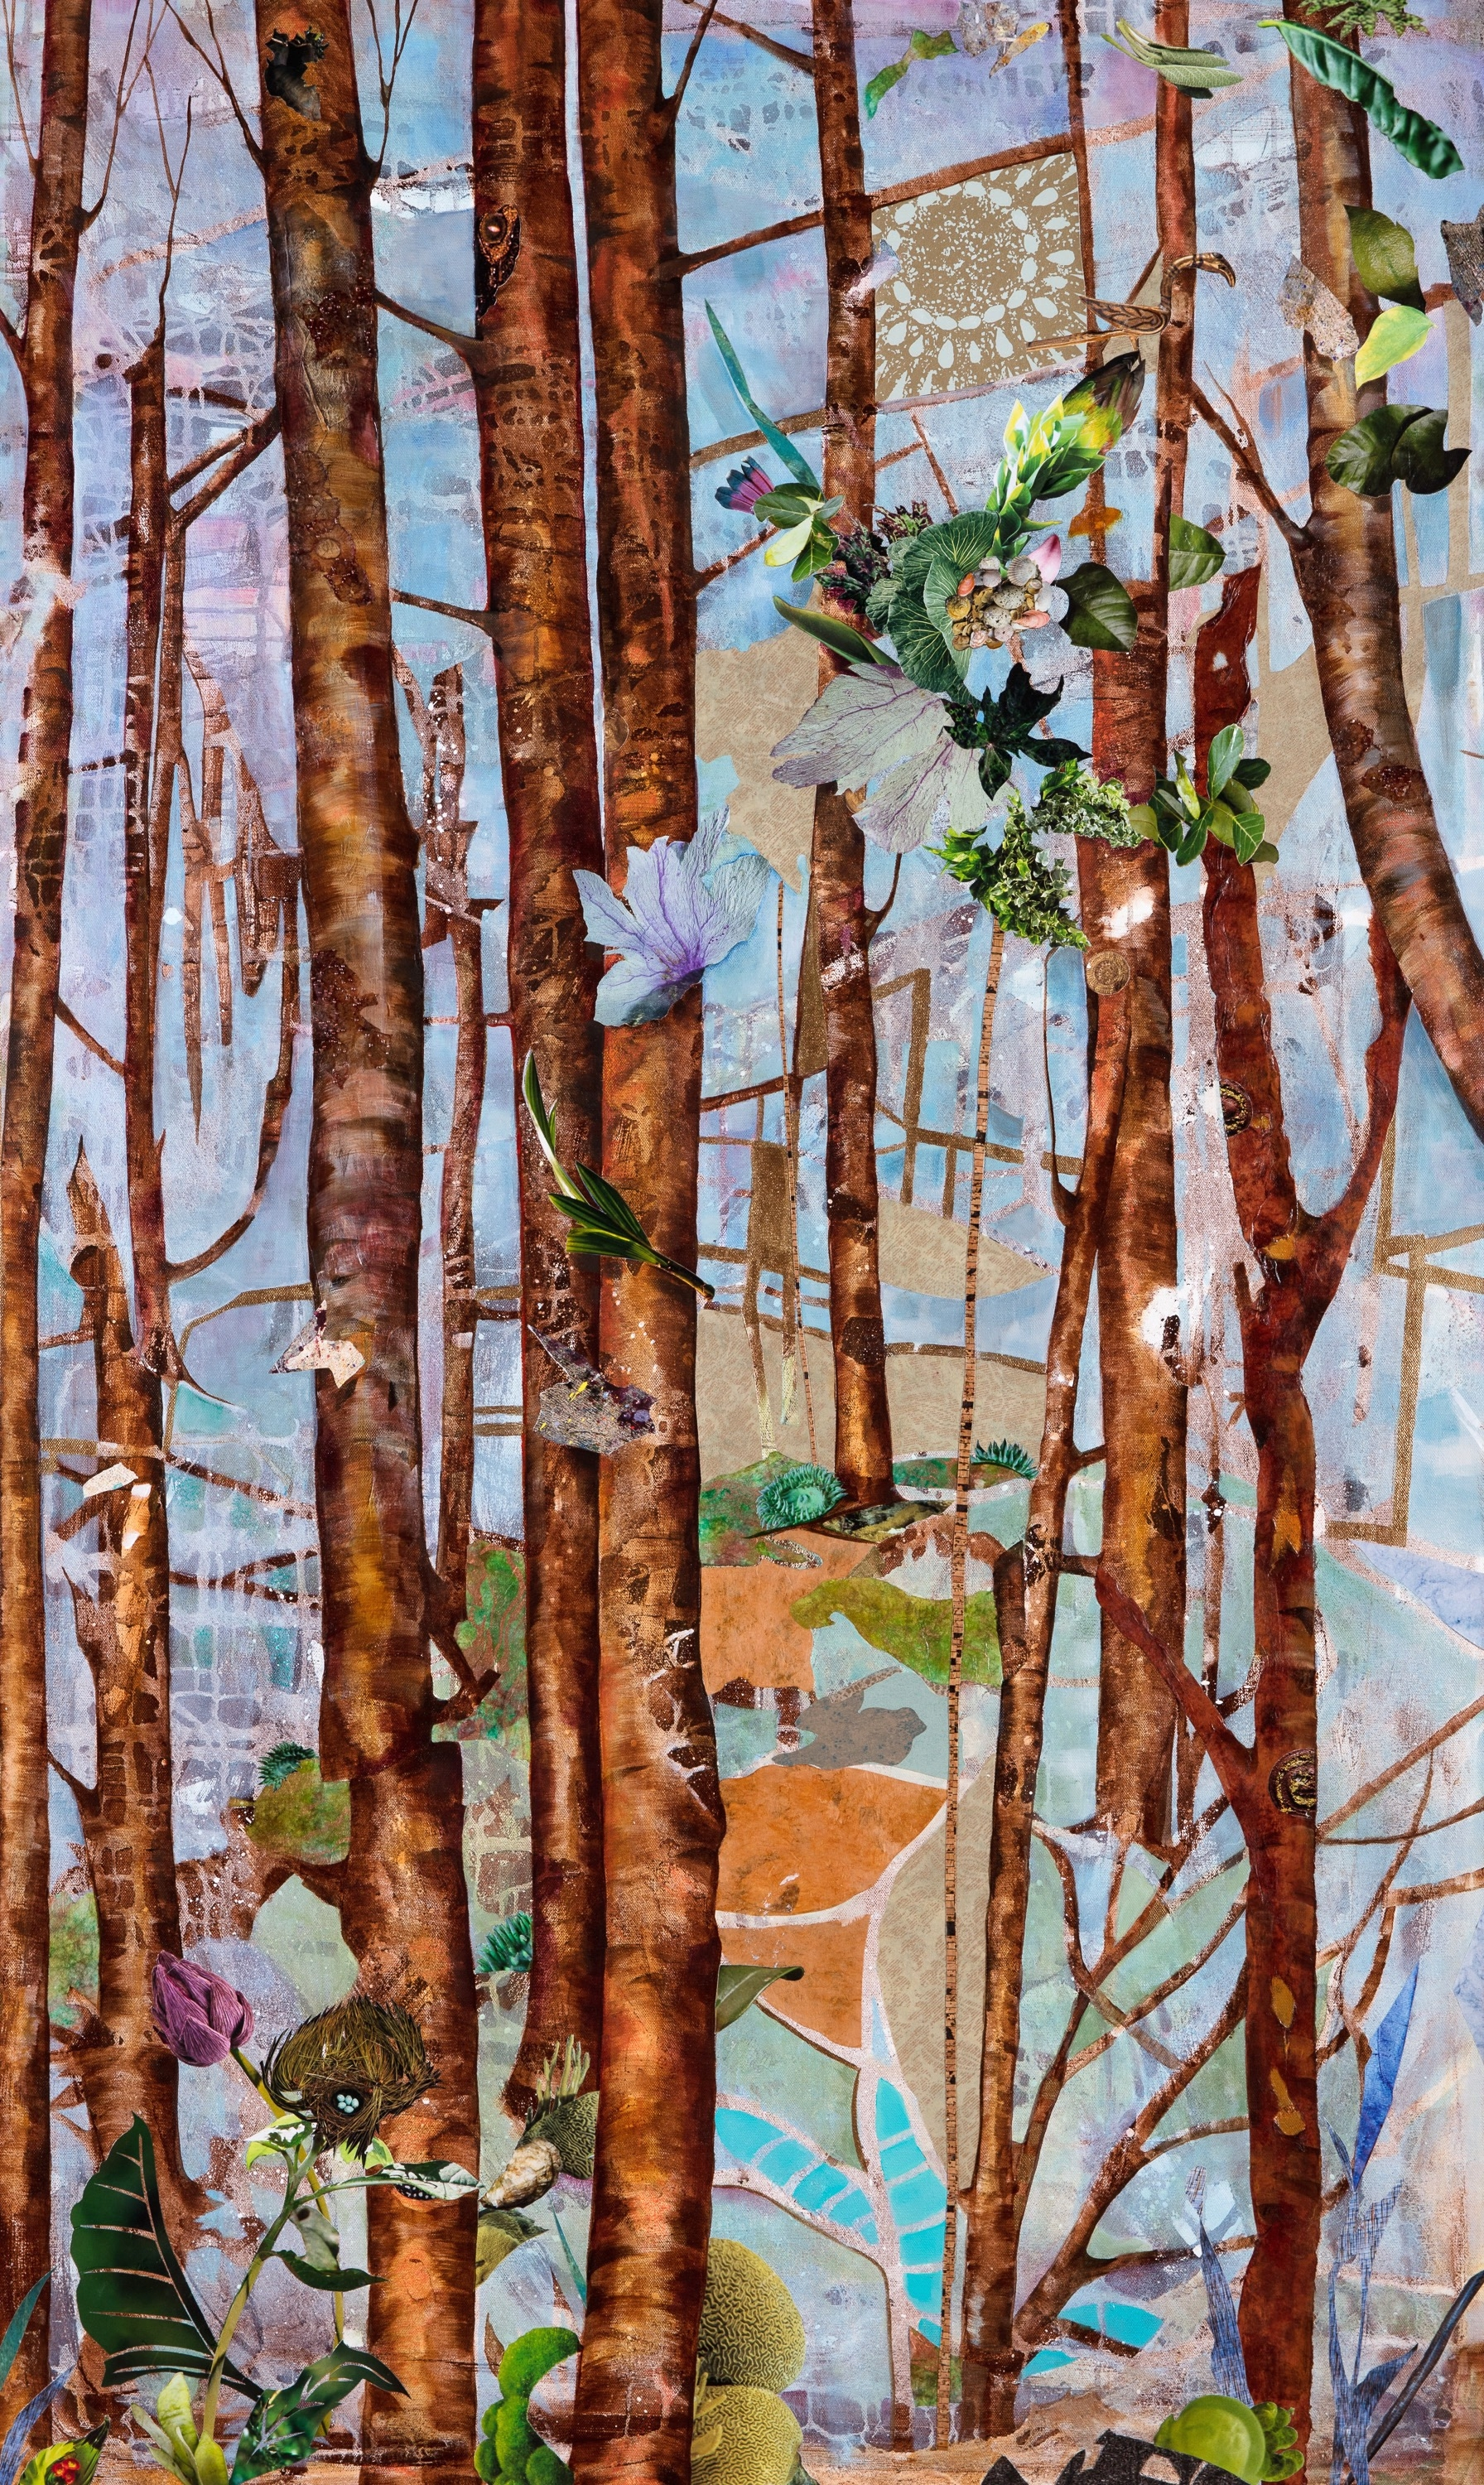 TRUNK SHOW I, 60x36, mixed collage on canvas (2017)